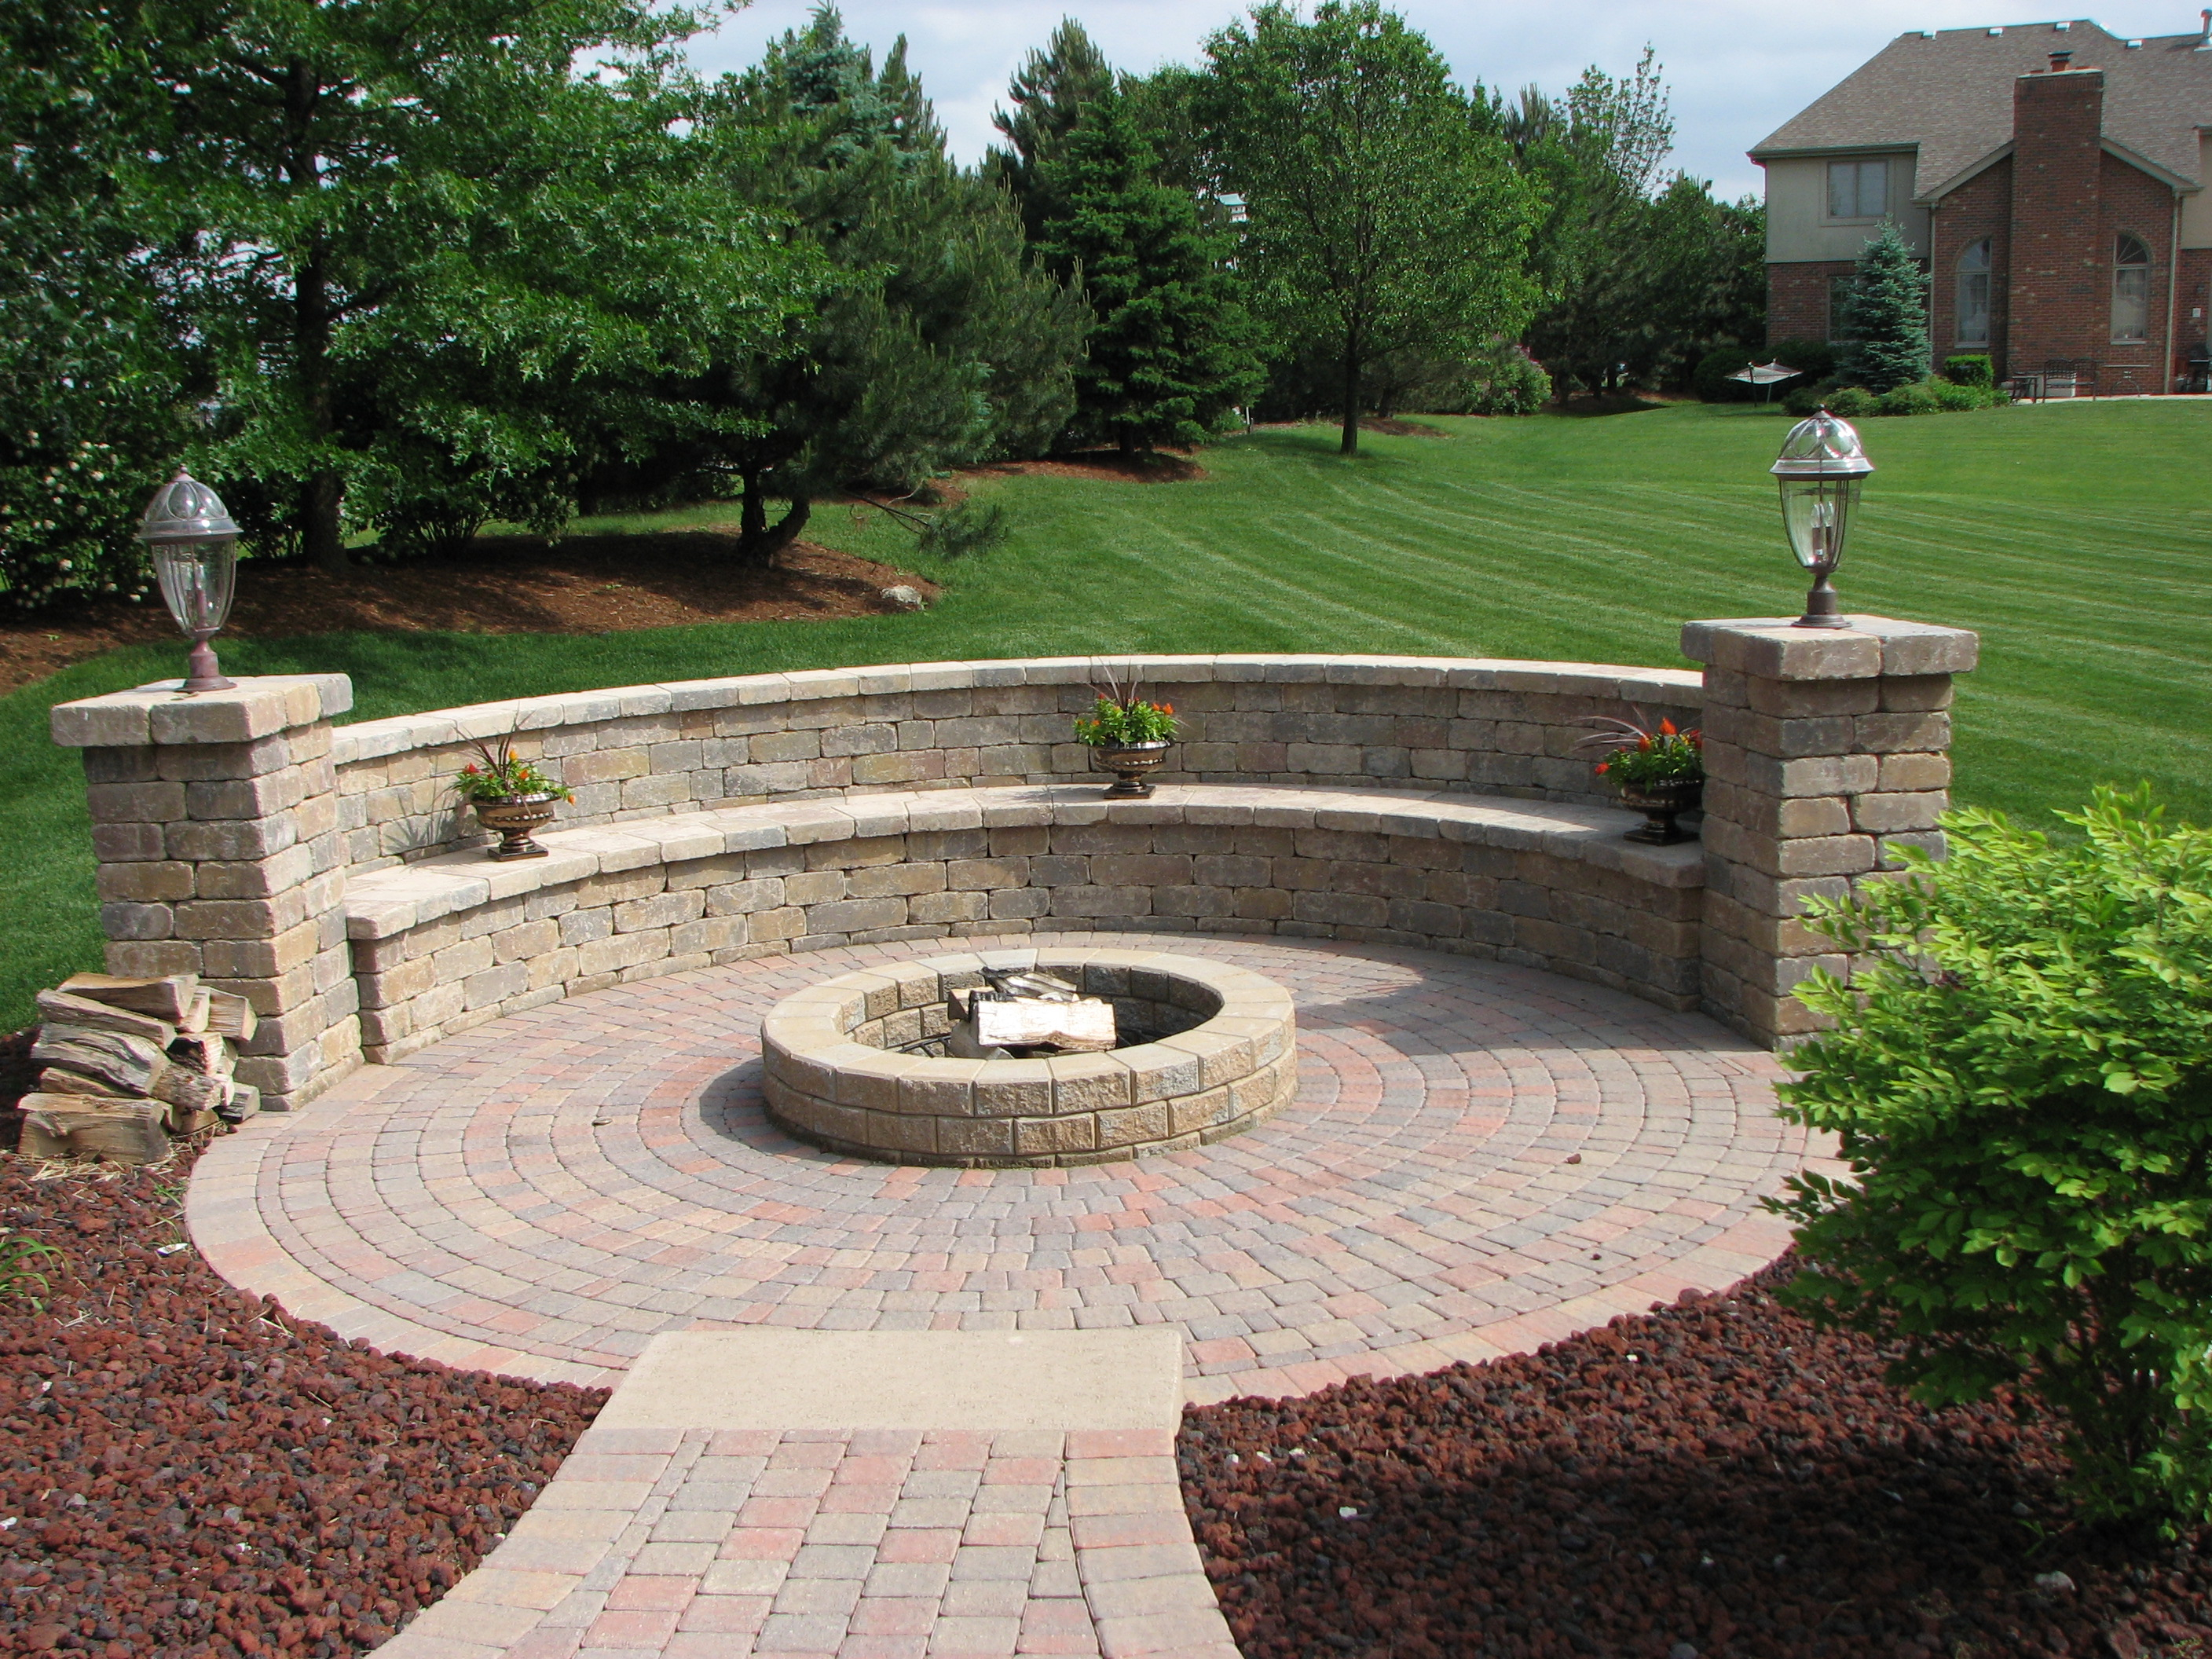 Fire Pit Landscaping Ideas The New Way Home Decor Fire Pit Ideas within 14 Genius Designs of How to Improve Backyard With Fire Pit Landscaping Ideas